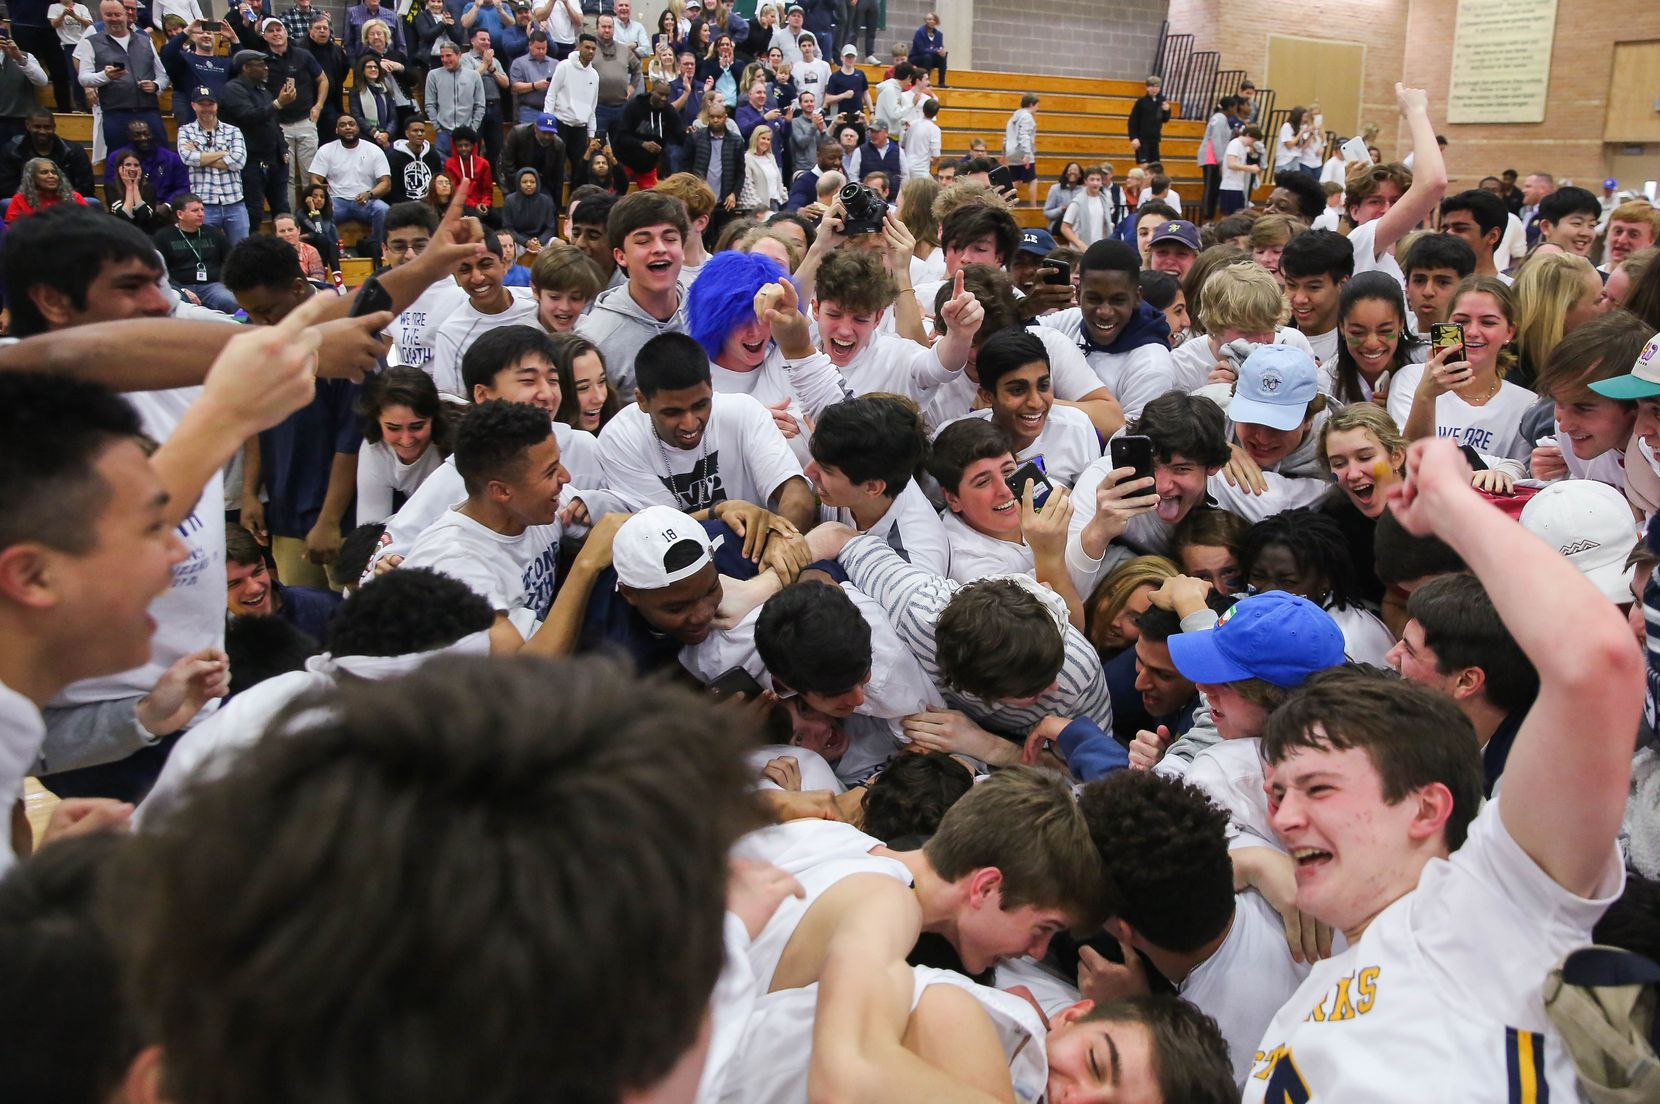 The St. Mark's student section dog pile the players after winning a SPC boys basketball championship game against Houston Christian on Feb. 15, 2020 held at The Greenhill School inAddison. St. Mark's won 85-57.